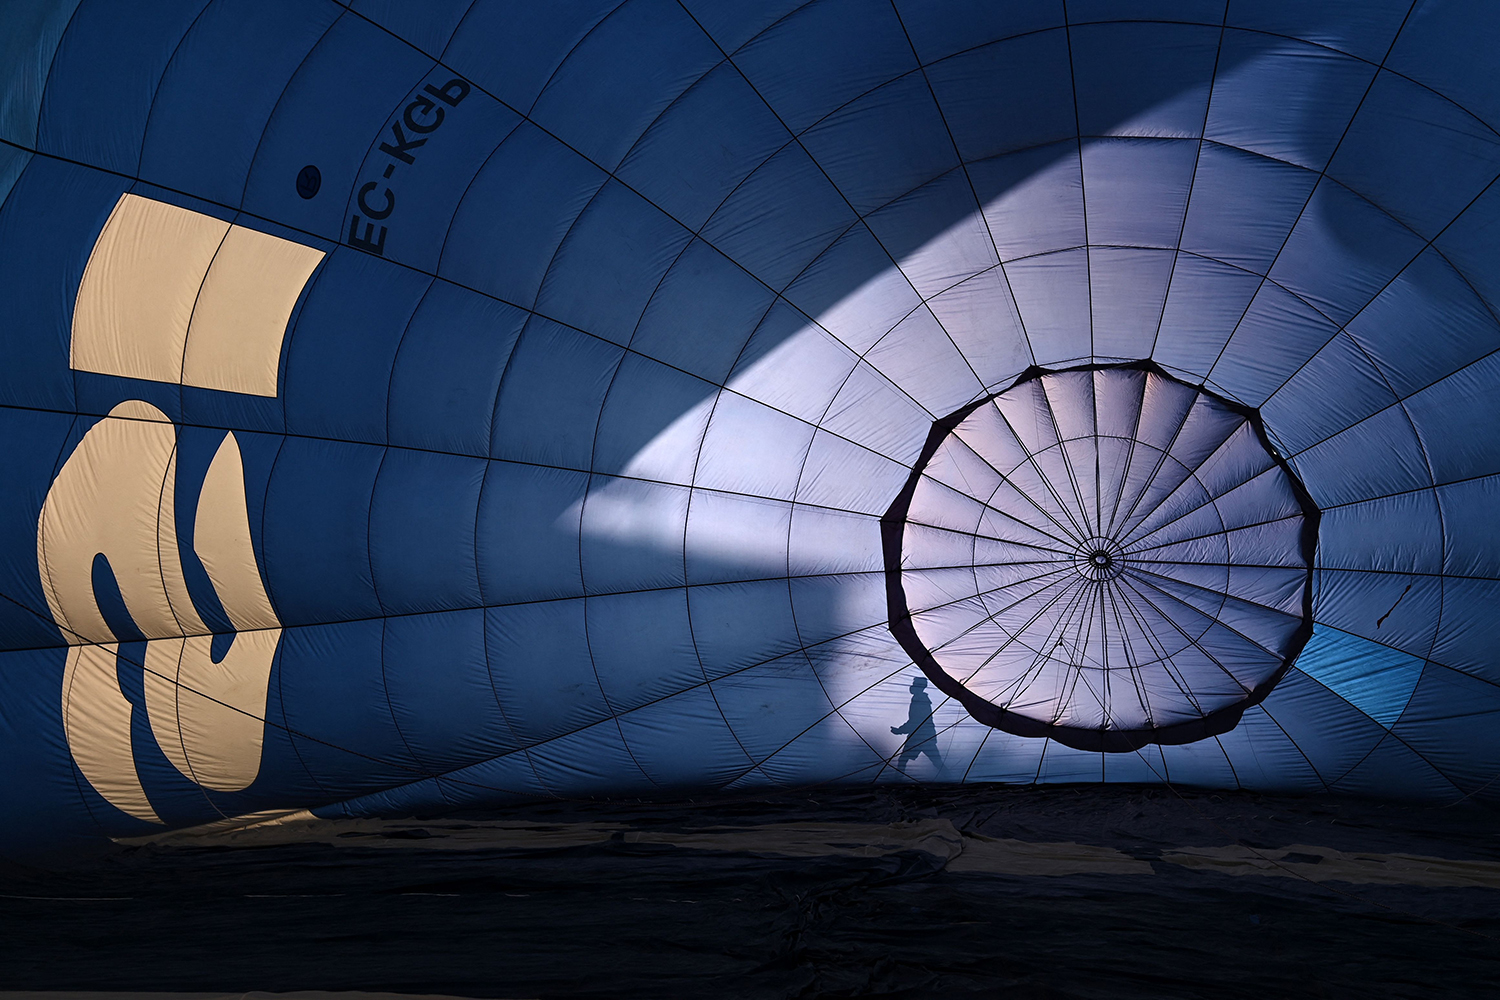 A person's shadow in front of hot air balloon at festival in Spain